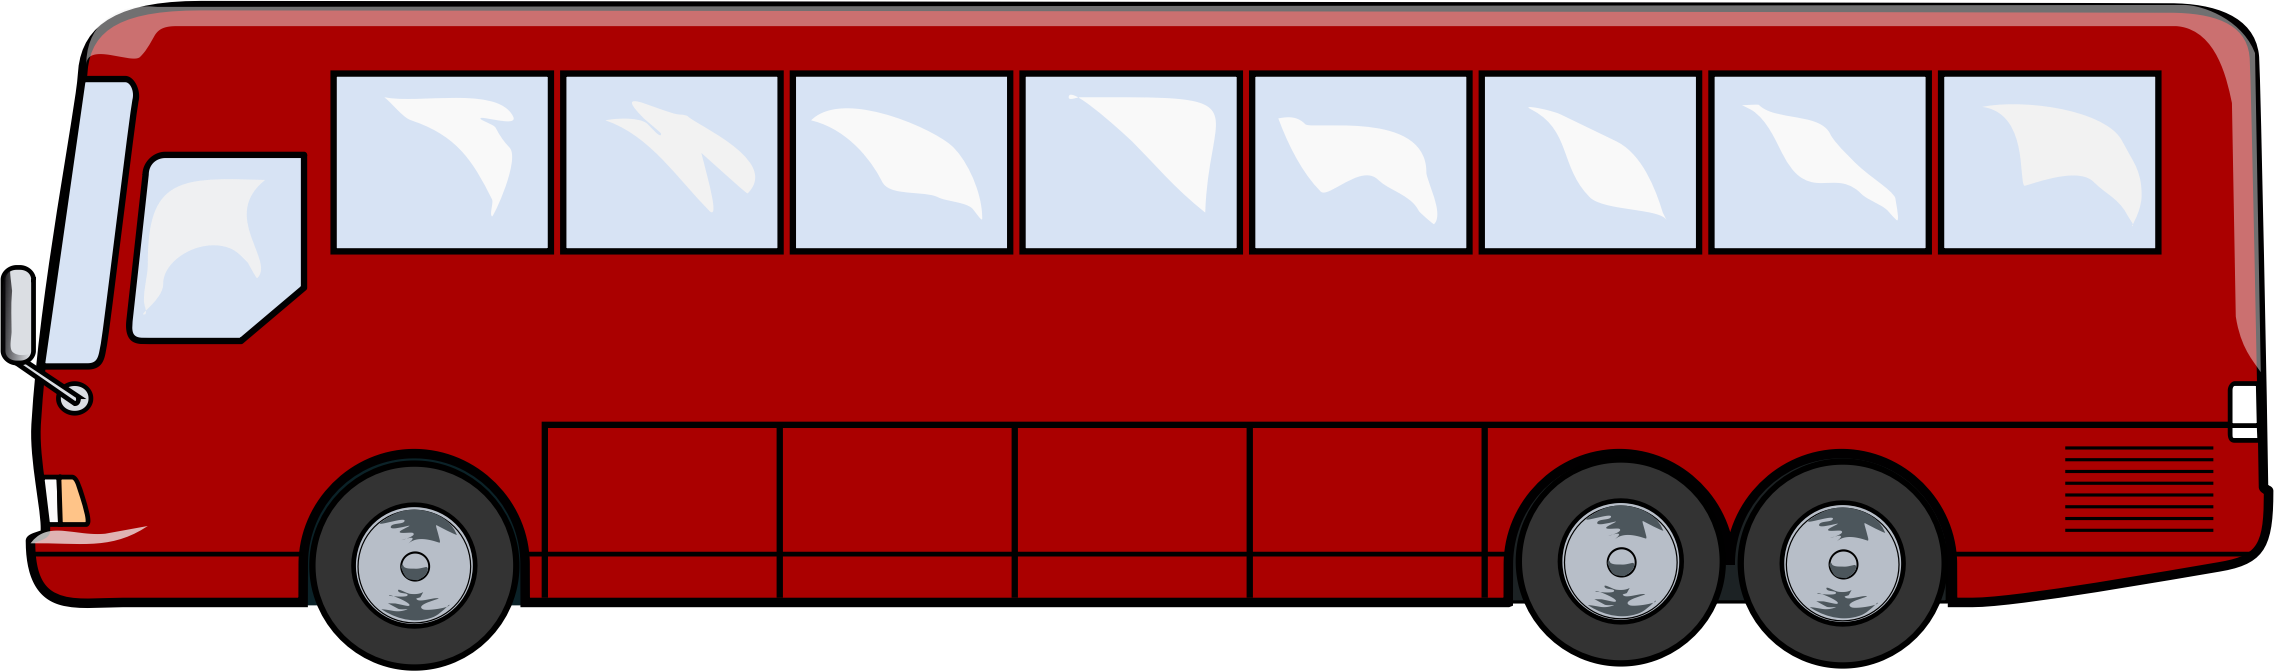 City bus clipart png - City Bus Side View PNG